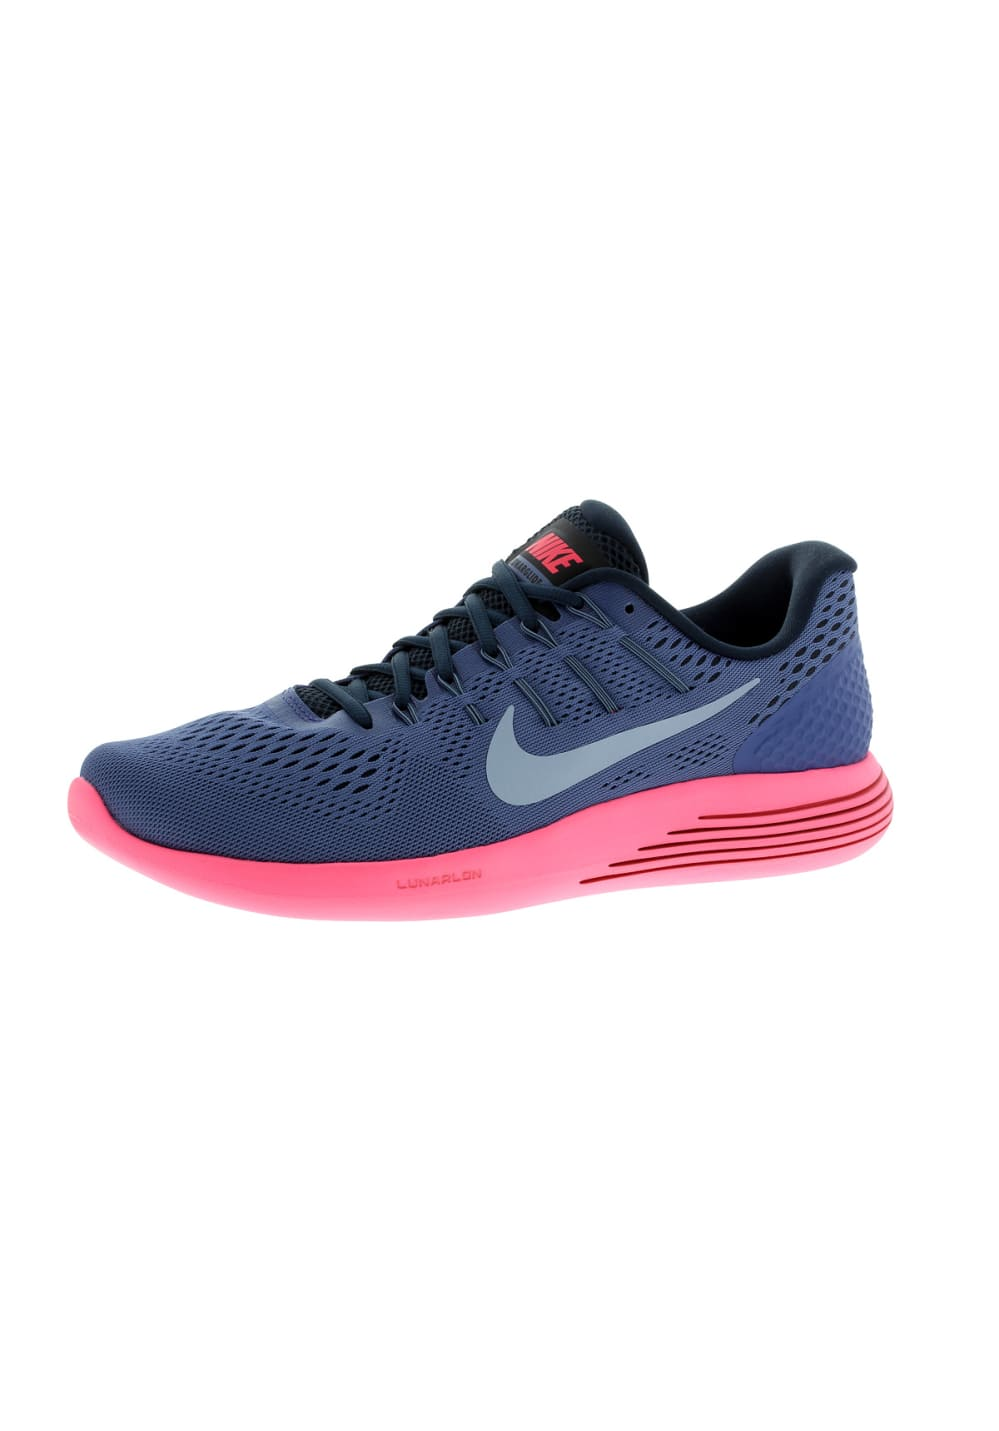 wholesale dealer ccaca f3a58 Nike Lunarglide 8 - Running shoes for Women - Blue